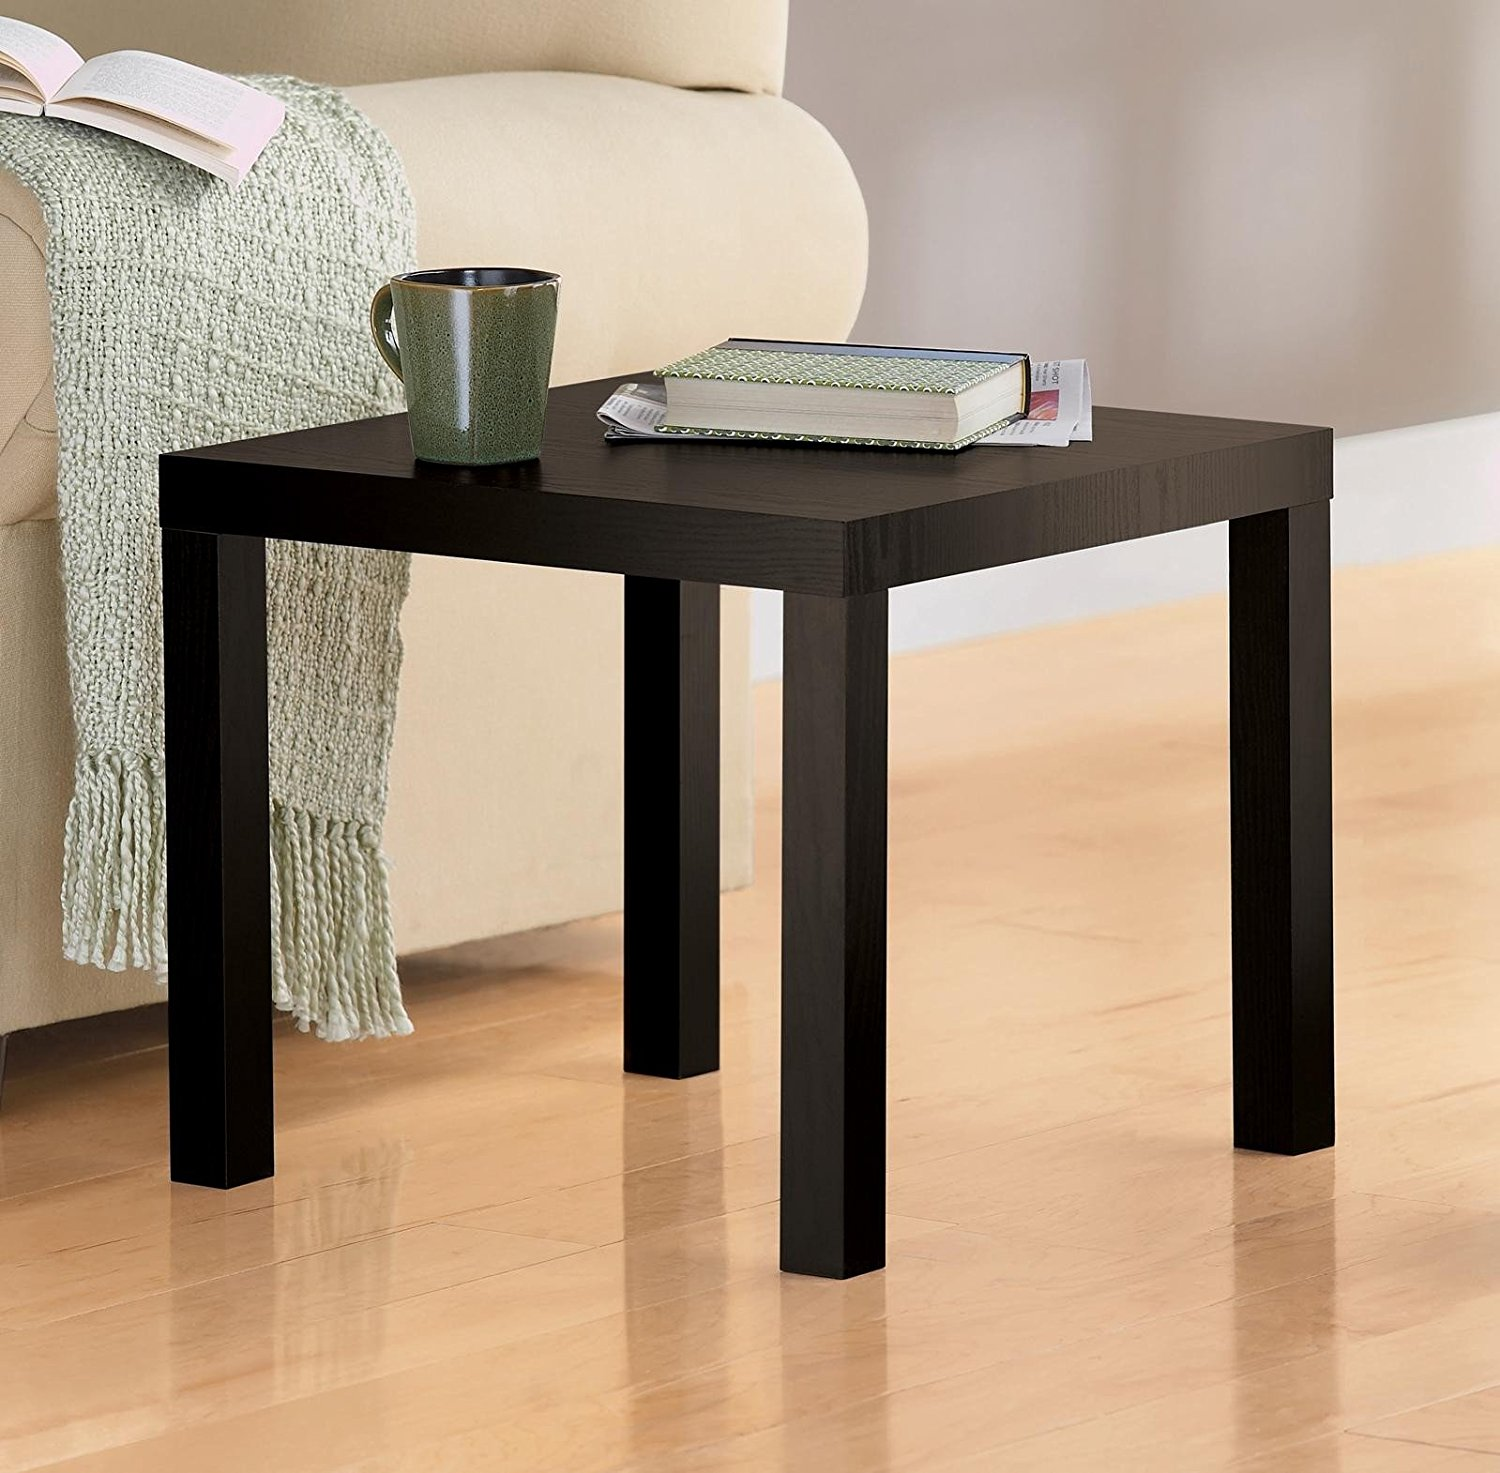 dhp parsons modern end table only endtable black wood grain wooden dog kennel kits ethan allen furniture houston offers chennai magnussen ashby nightstand unfinished entry inch